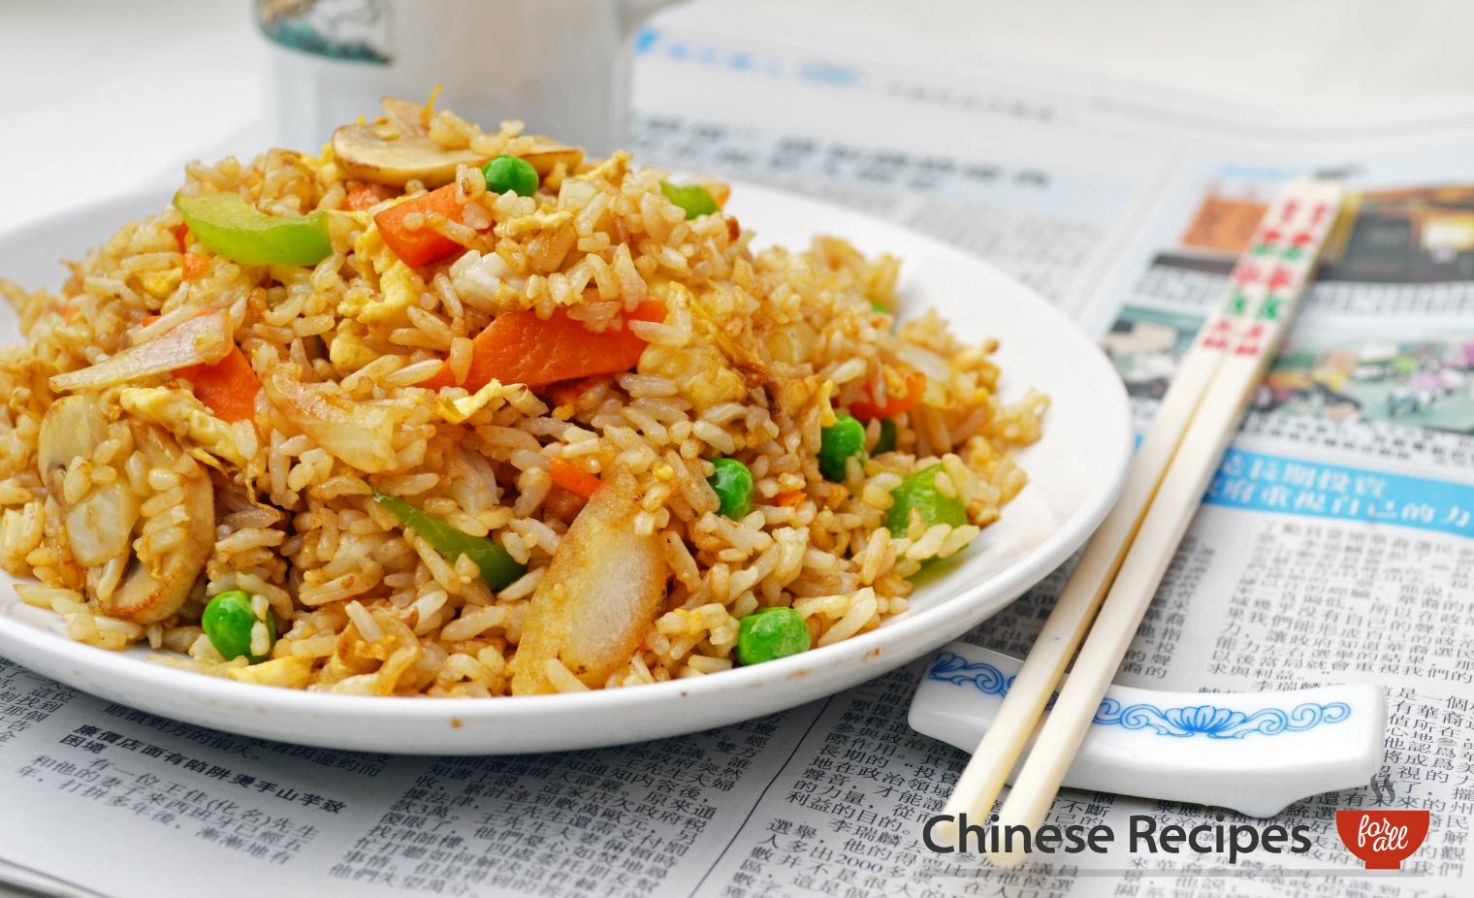 Vegetable Fried Rice - Recipes Rice And Vegetables